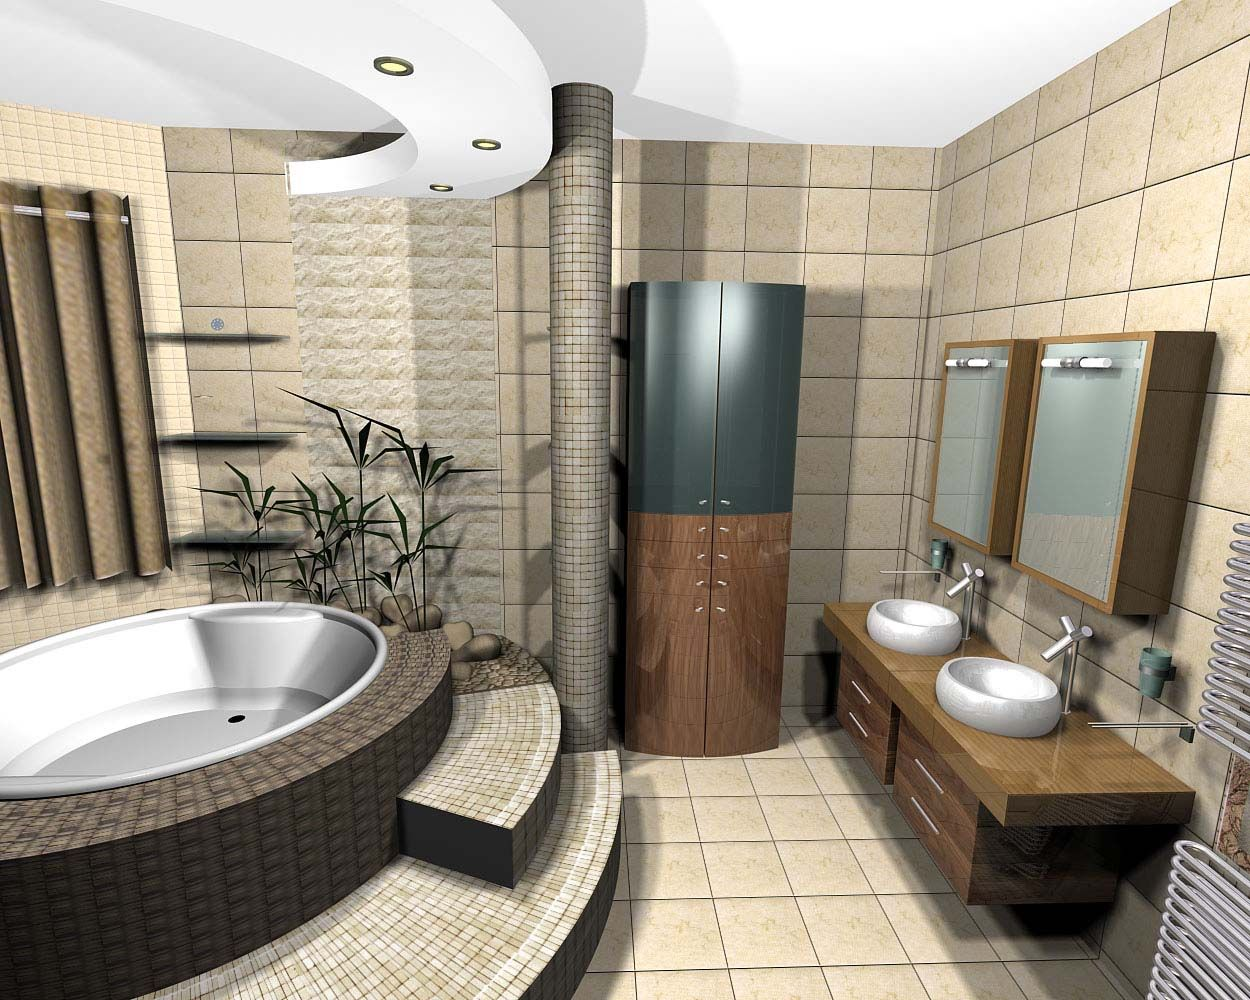 Amazing Bathroom Designs amazing bathrooms amazing bathrooms ideas amazing bathroomsamazing